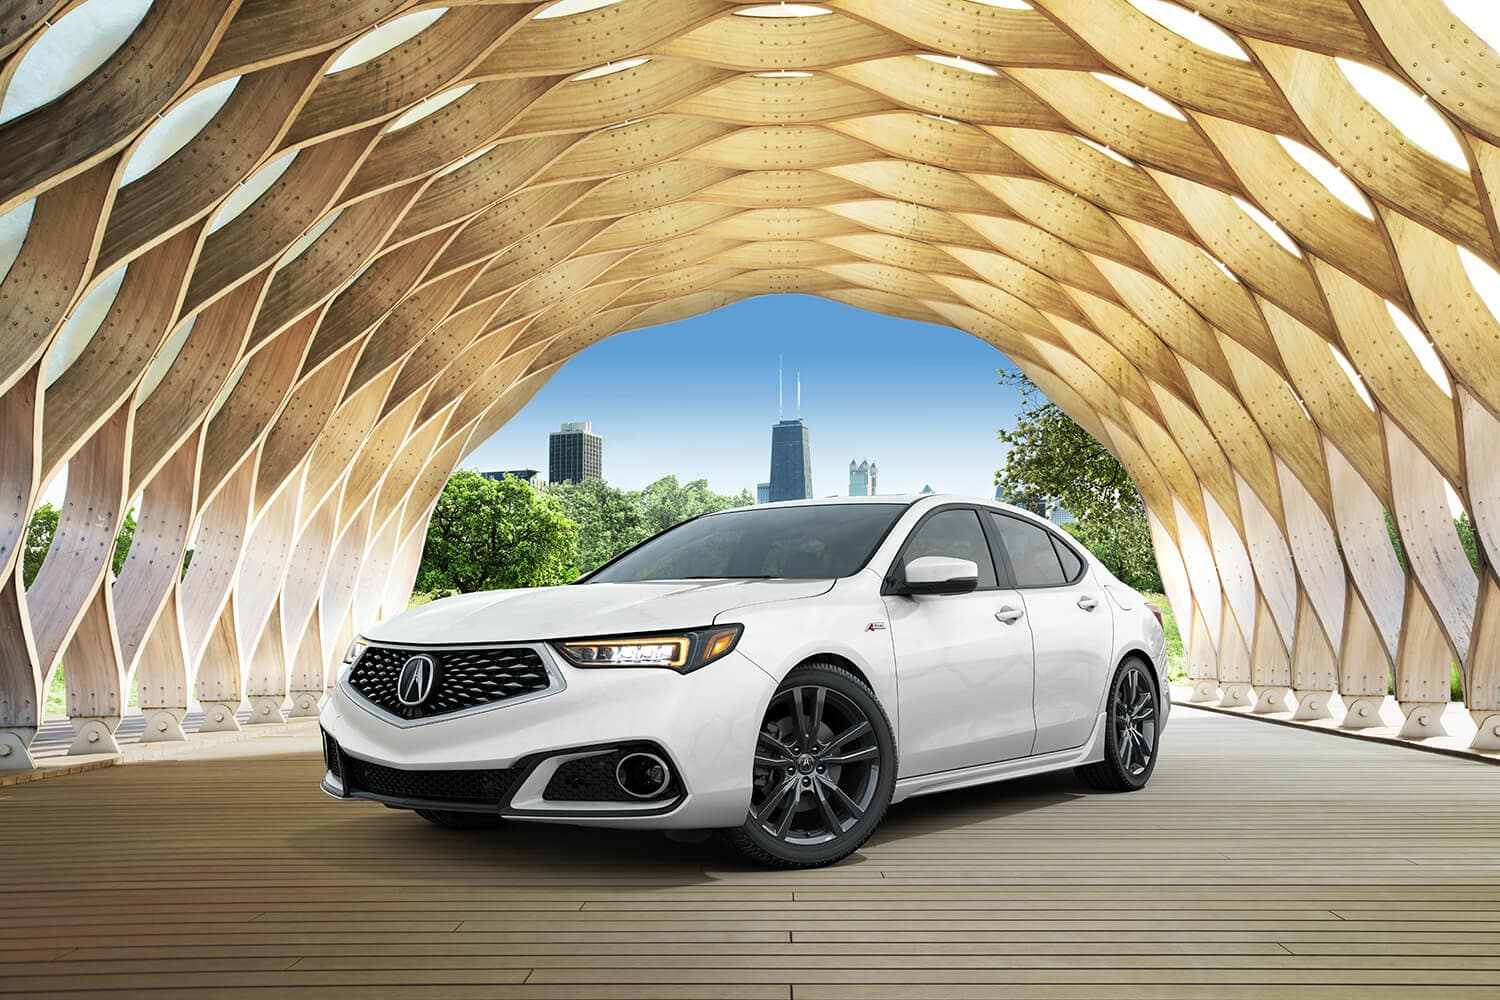 2019 Acura TLX Exterior City Passenger Side